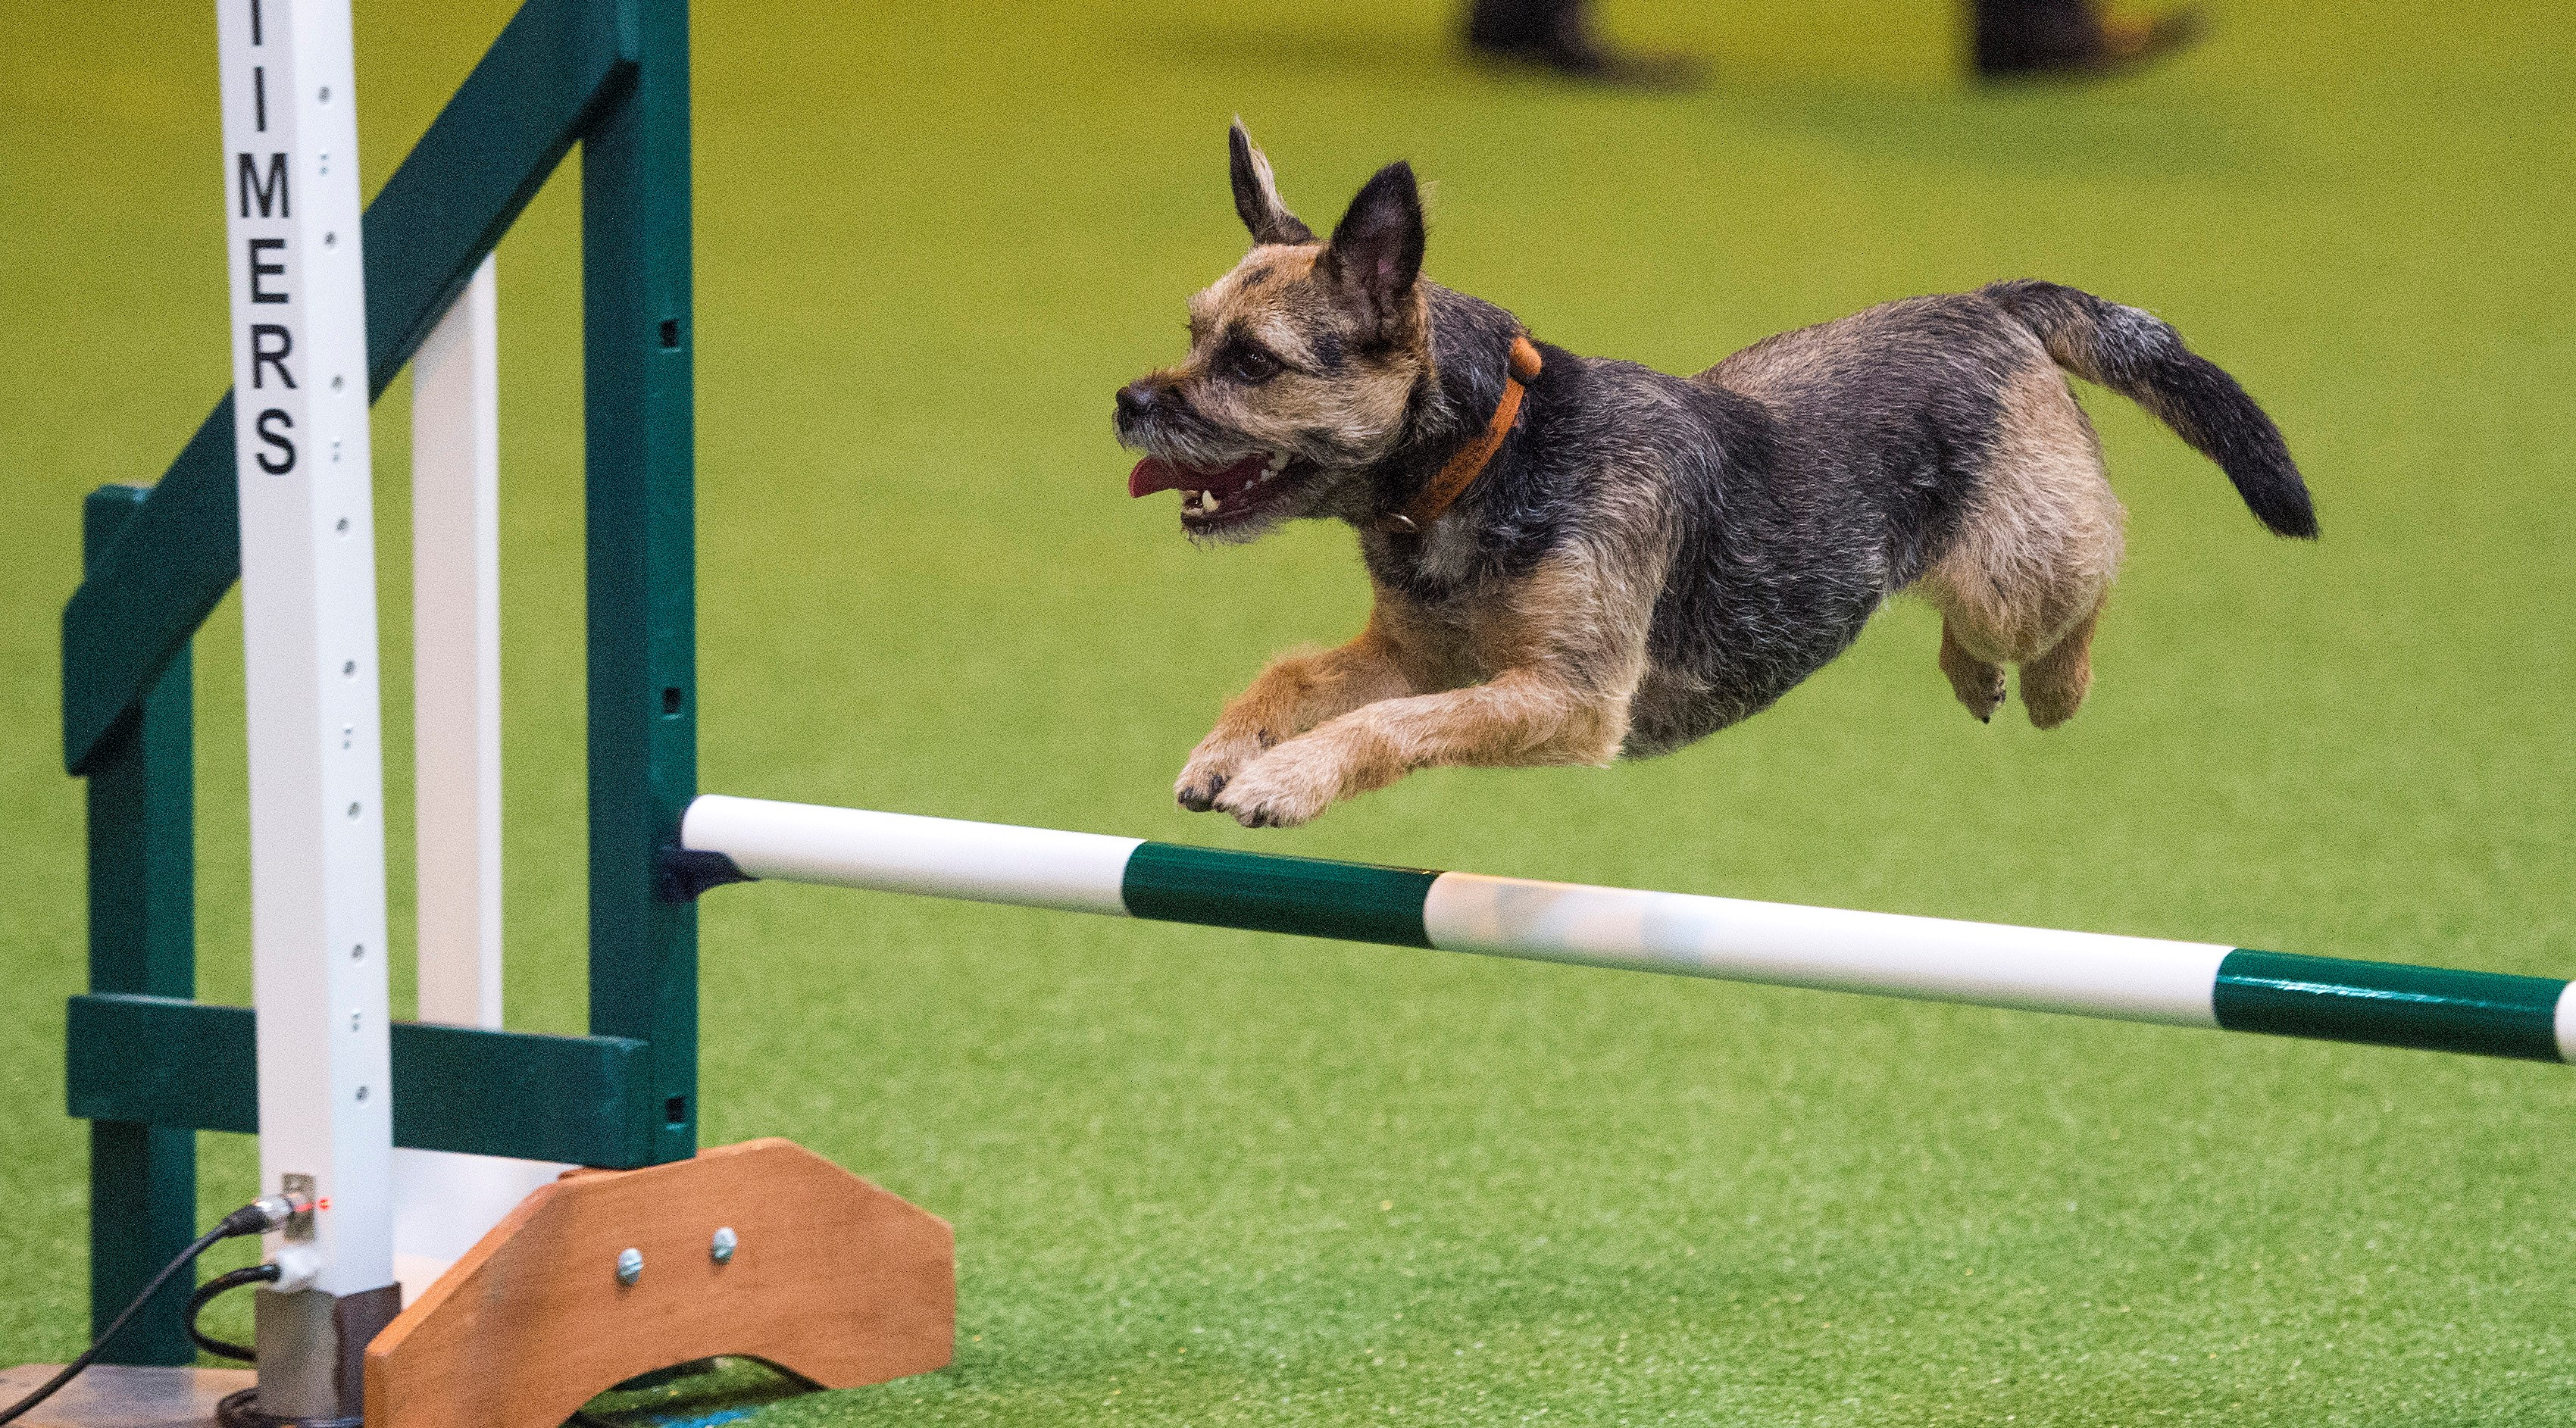 Tickets to Crufts 2017